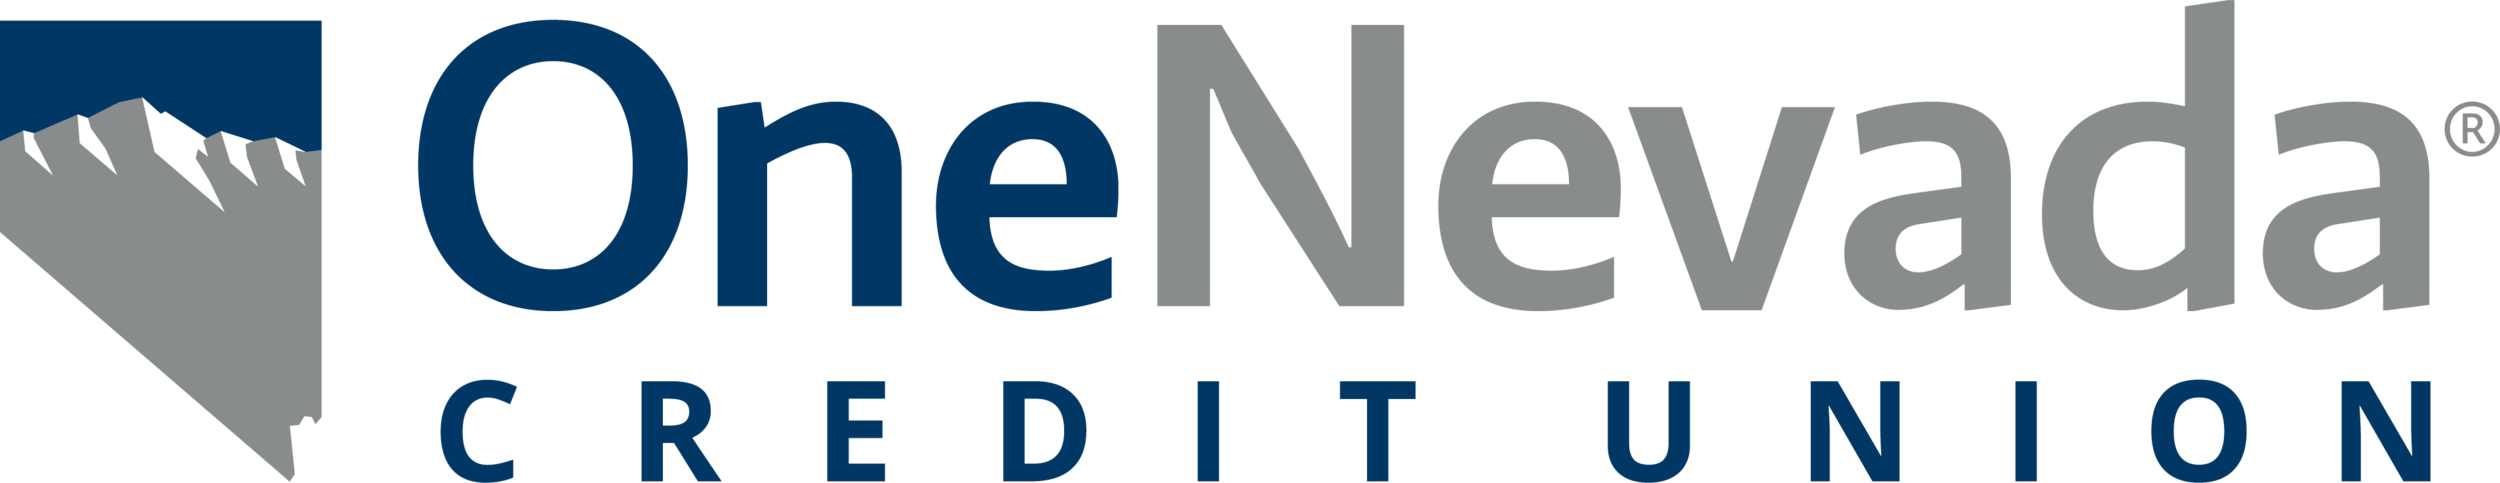 One_Nevada_Credit_Union_Logo__Standard-logo-full-color-artboard.png